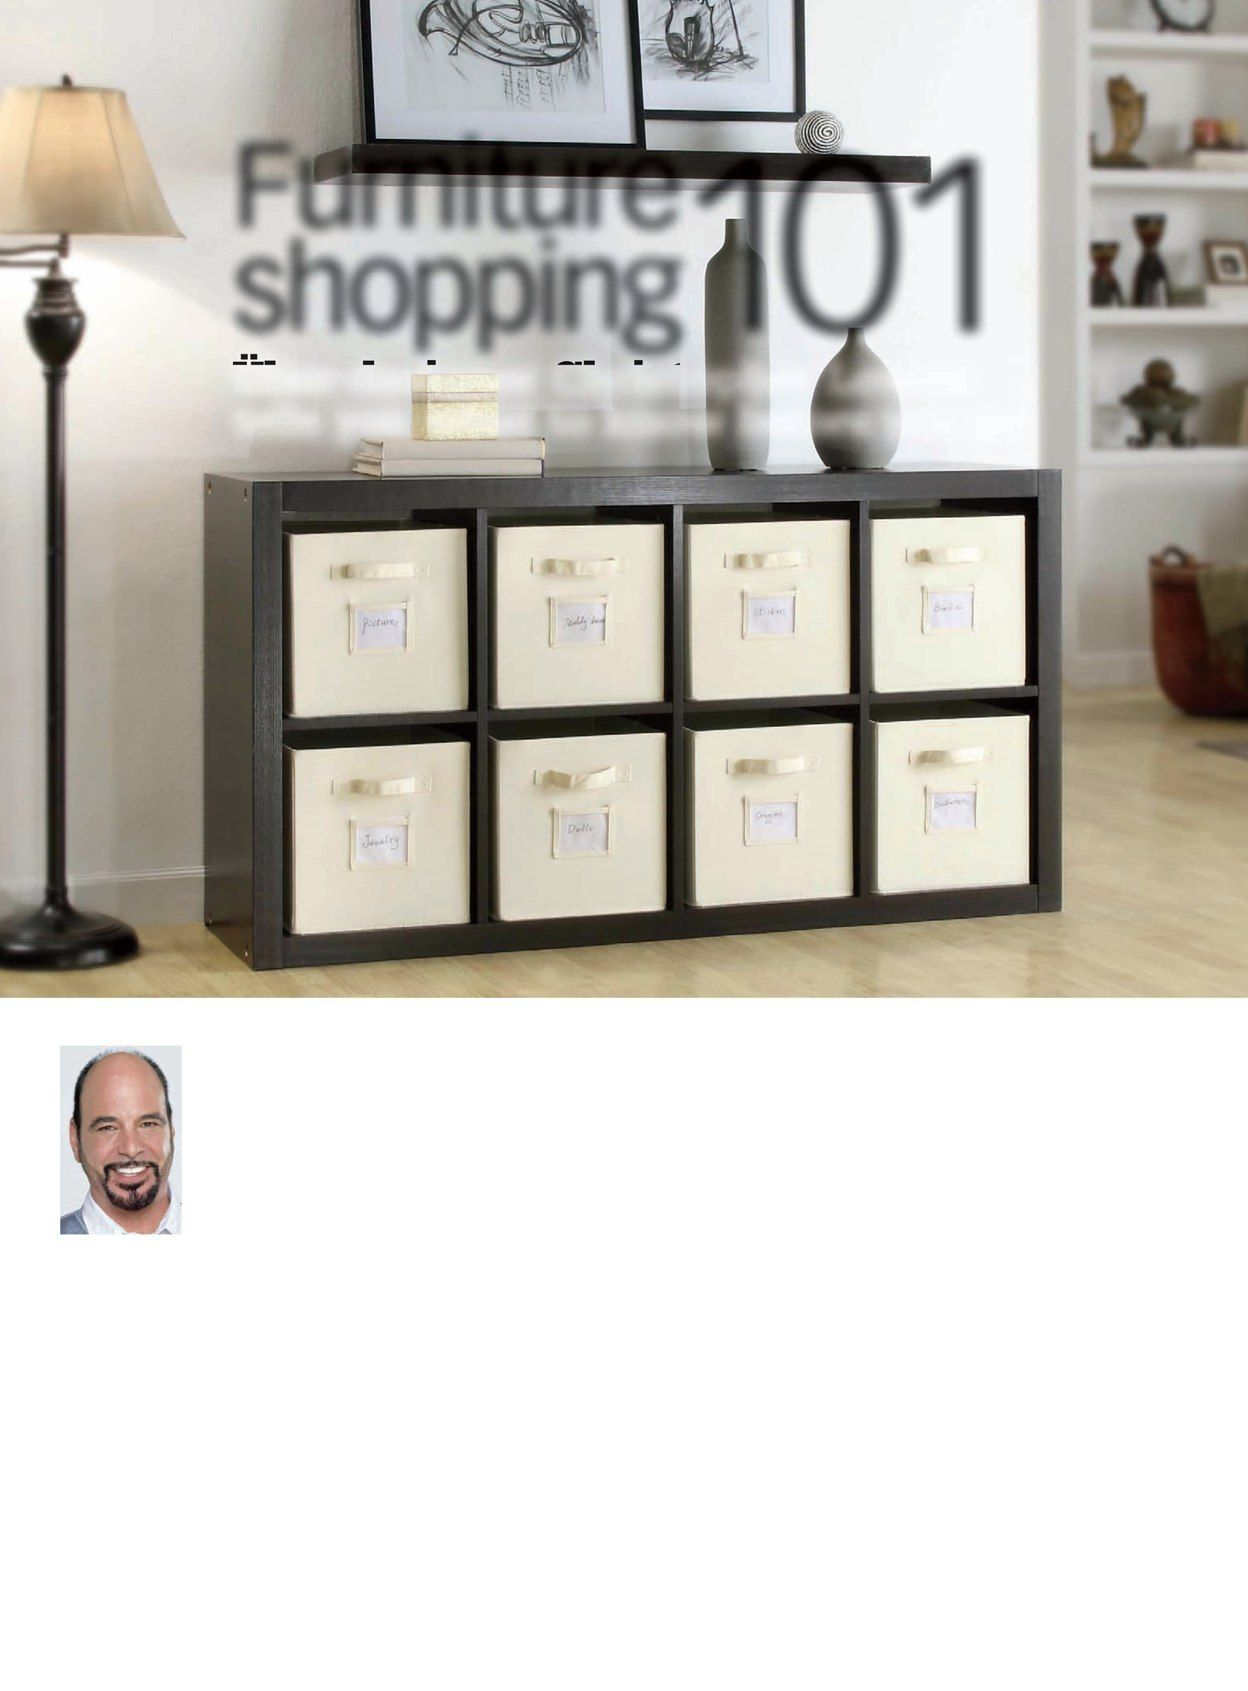 Onin Room Divider w storage bins 130 at Costco got these and